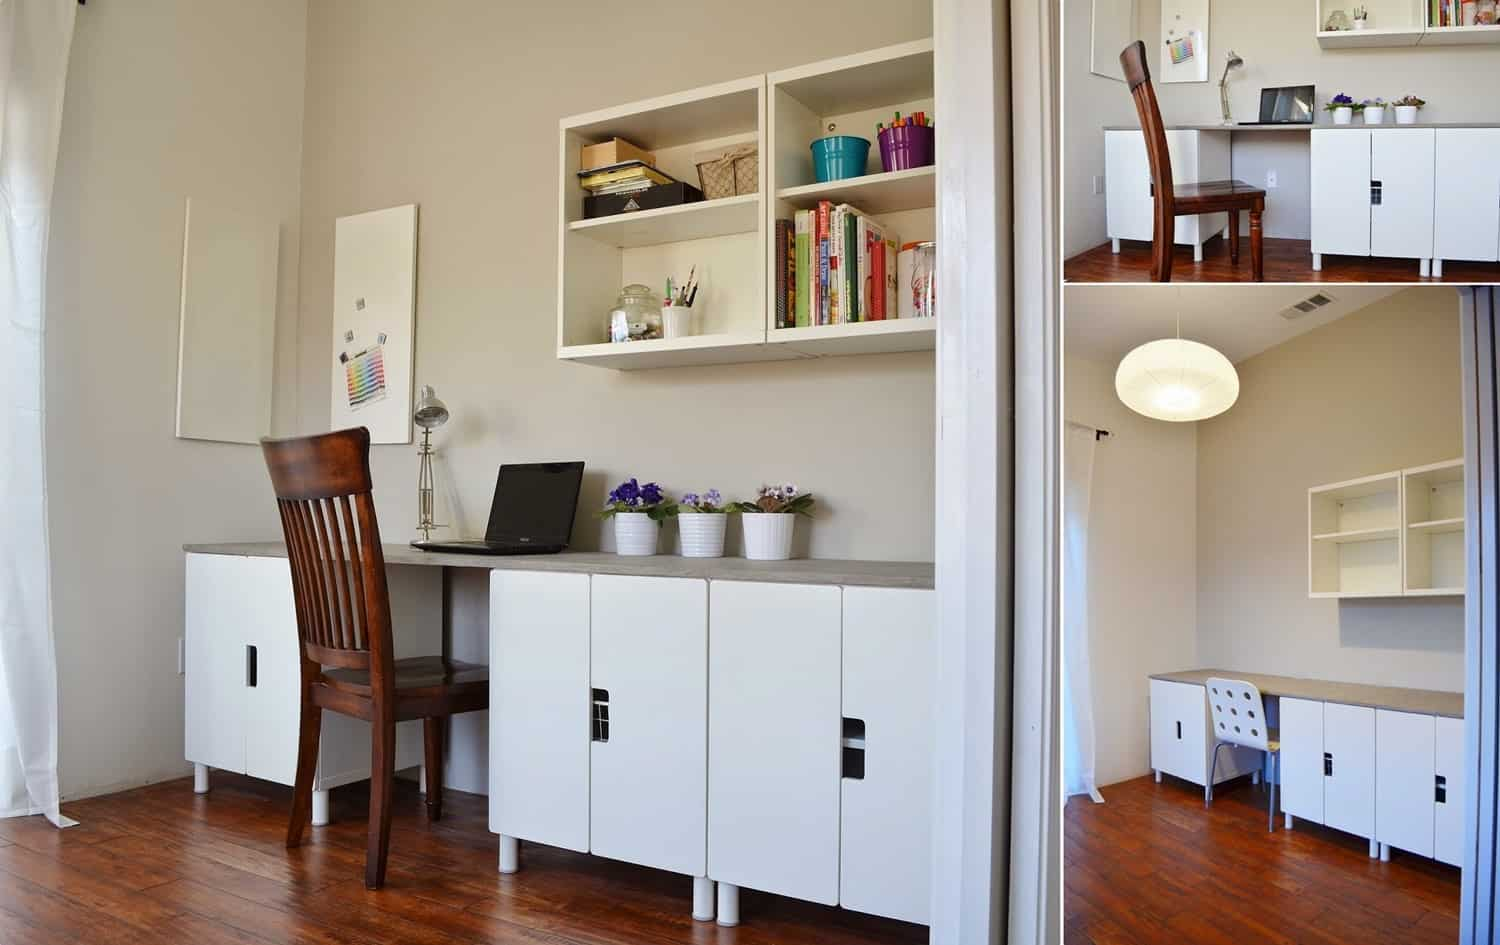 IKEA Stuva Cabinets Table Hack with a Faux Concrete Countertop